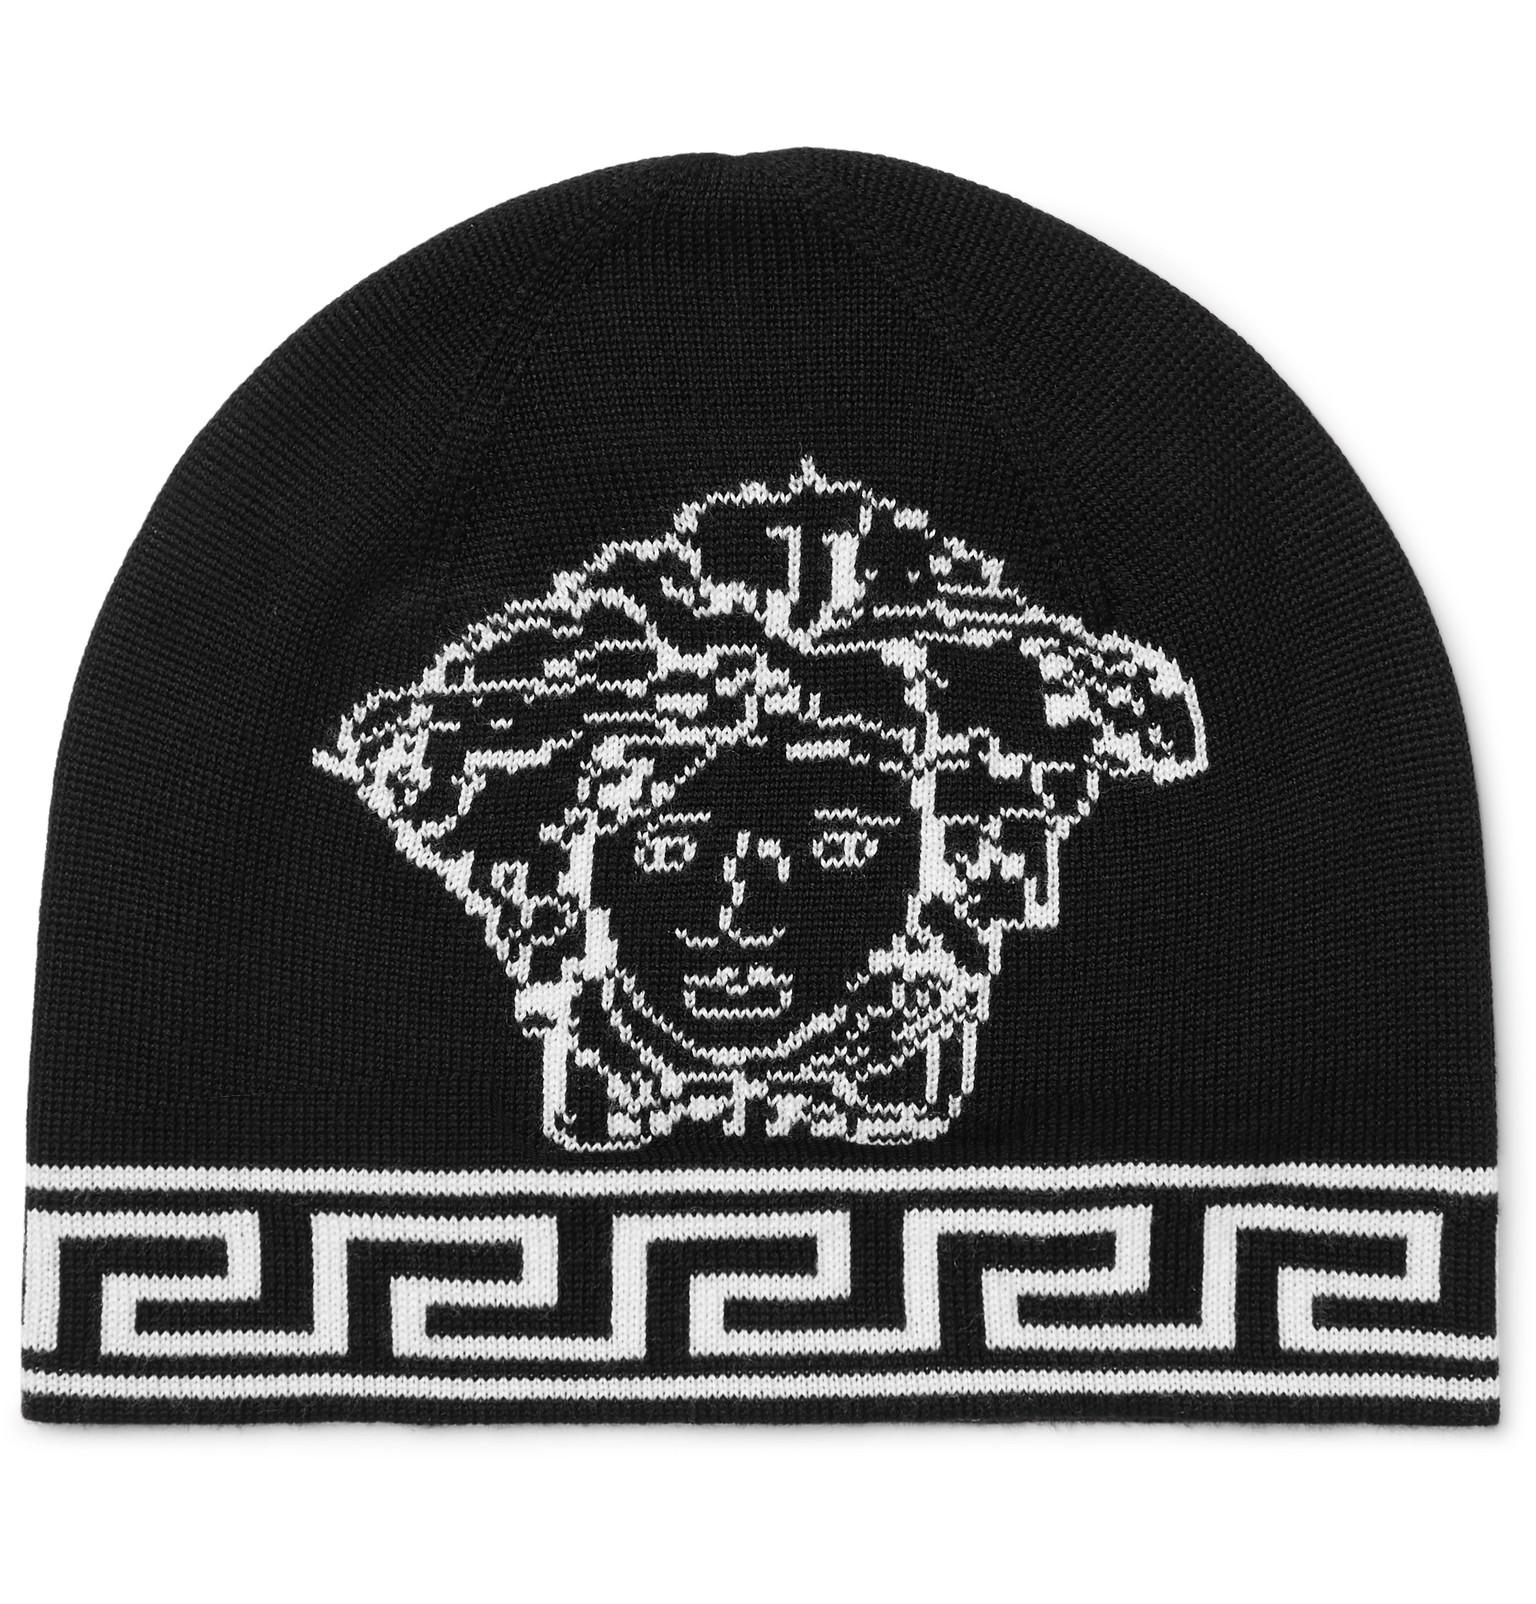 c7d98edaf9542 Lyst - Versace Medusa Intarsia Beanie in Black for Men - Save 36%